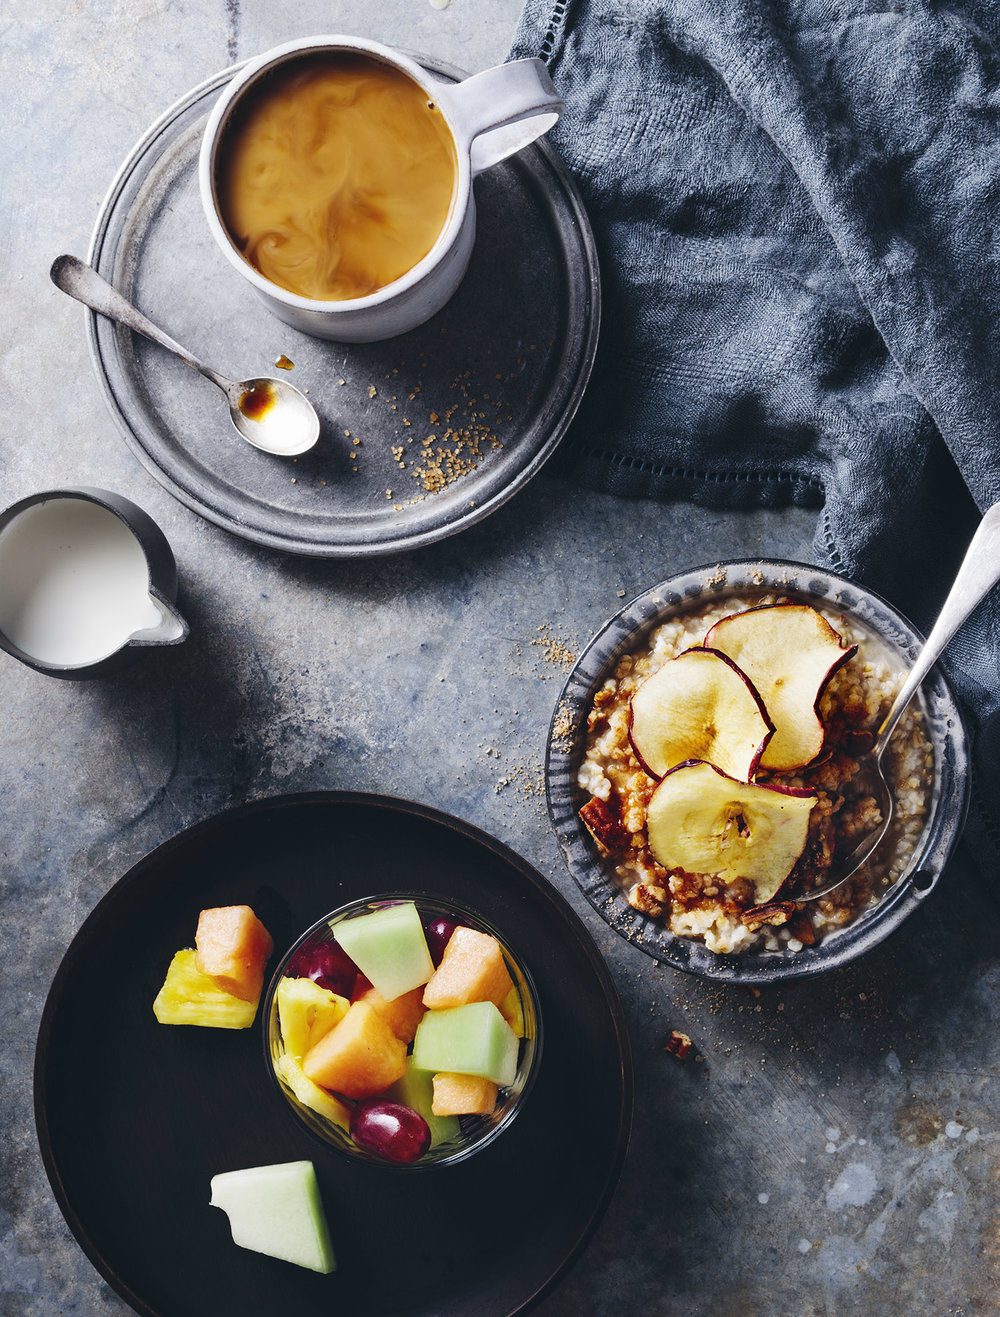 C417-OatmealFruitCupCoffee_0400_V1_final.jpg